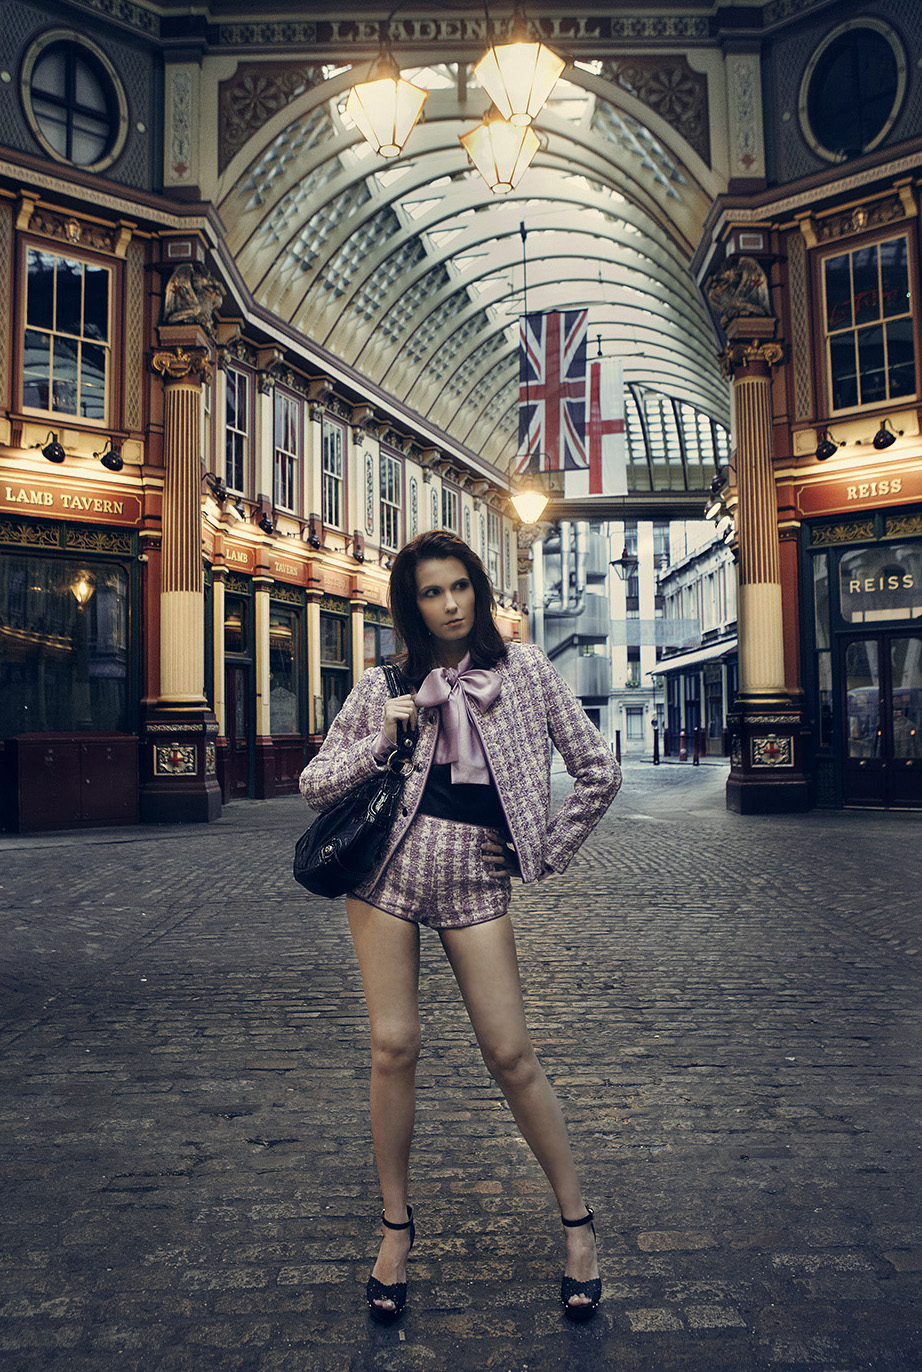 Ana Glowyth Leadenhall Market London Photo Shoot July 2015 Professional Photo (1).jpg